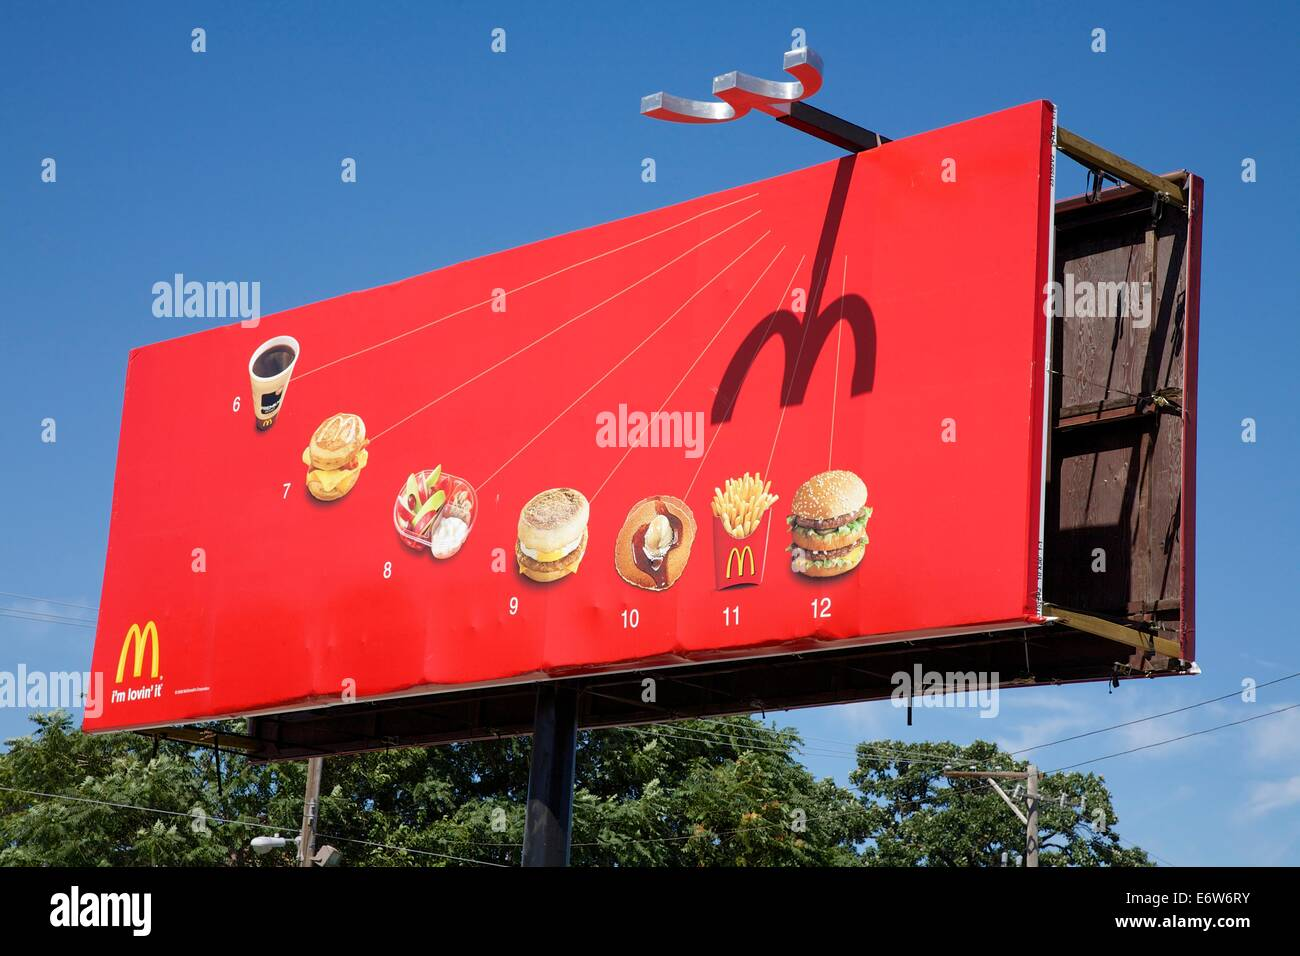 mcdonalds-billboard-designed-to-function